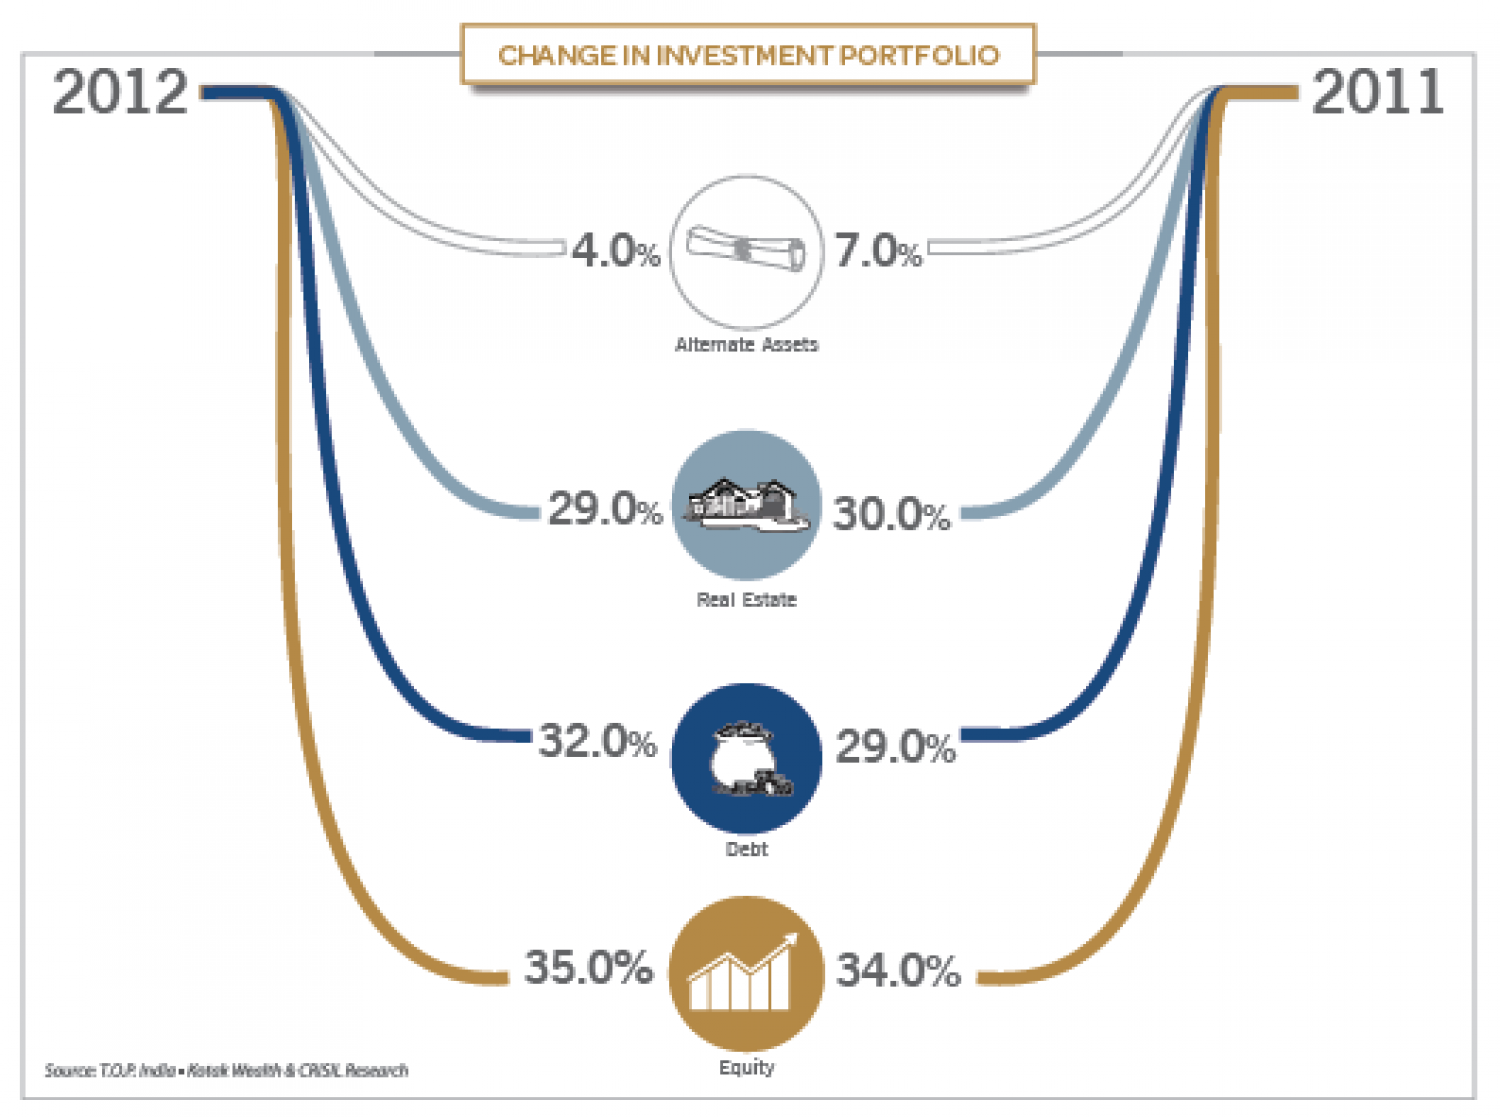 Change In Investment Portfolio Infographic